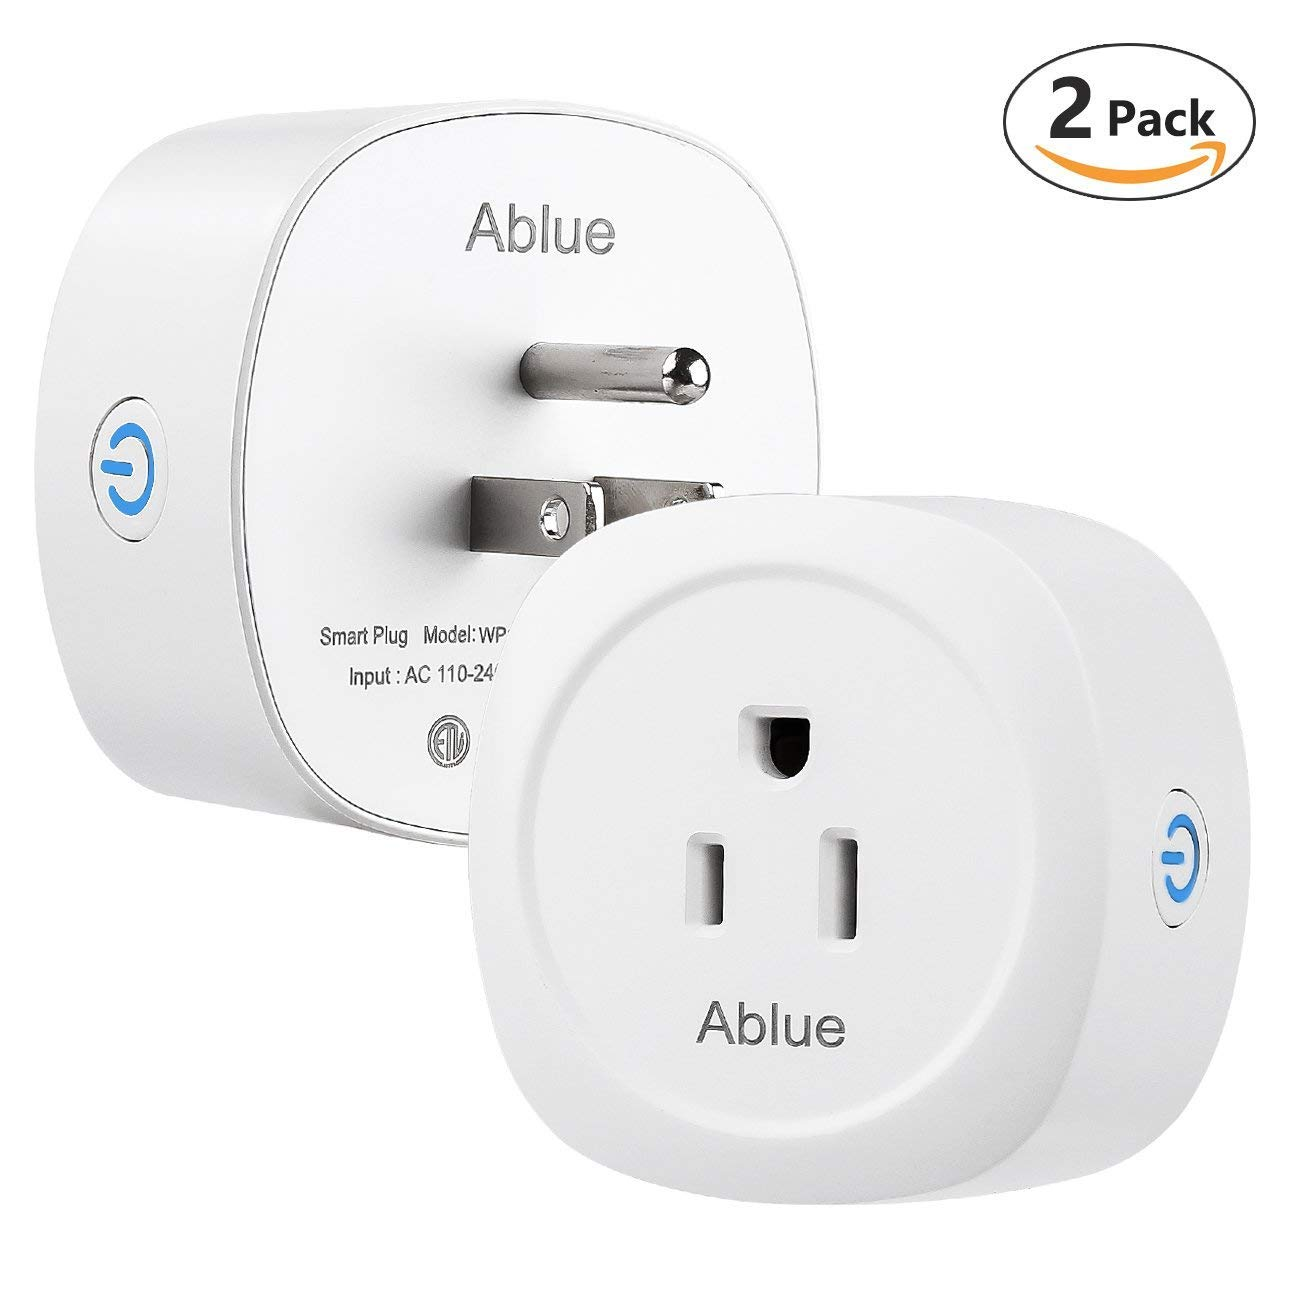 Smart Plug, Ablue Mini Socket Outlet, No Hub Required, Timing Function, Energy Monitoring, Compatible with Alexa, Control Lights and Appliances from Your Phone[ETL Certificated](2 Pack)